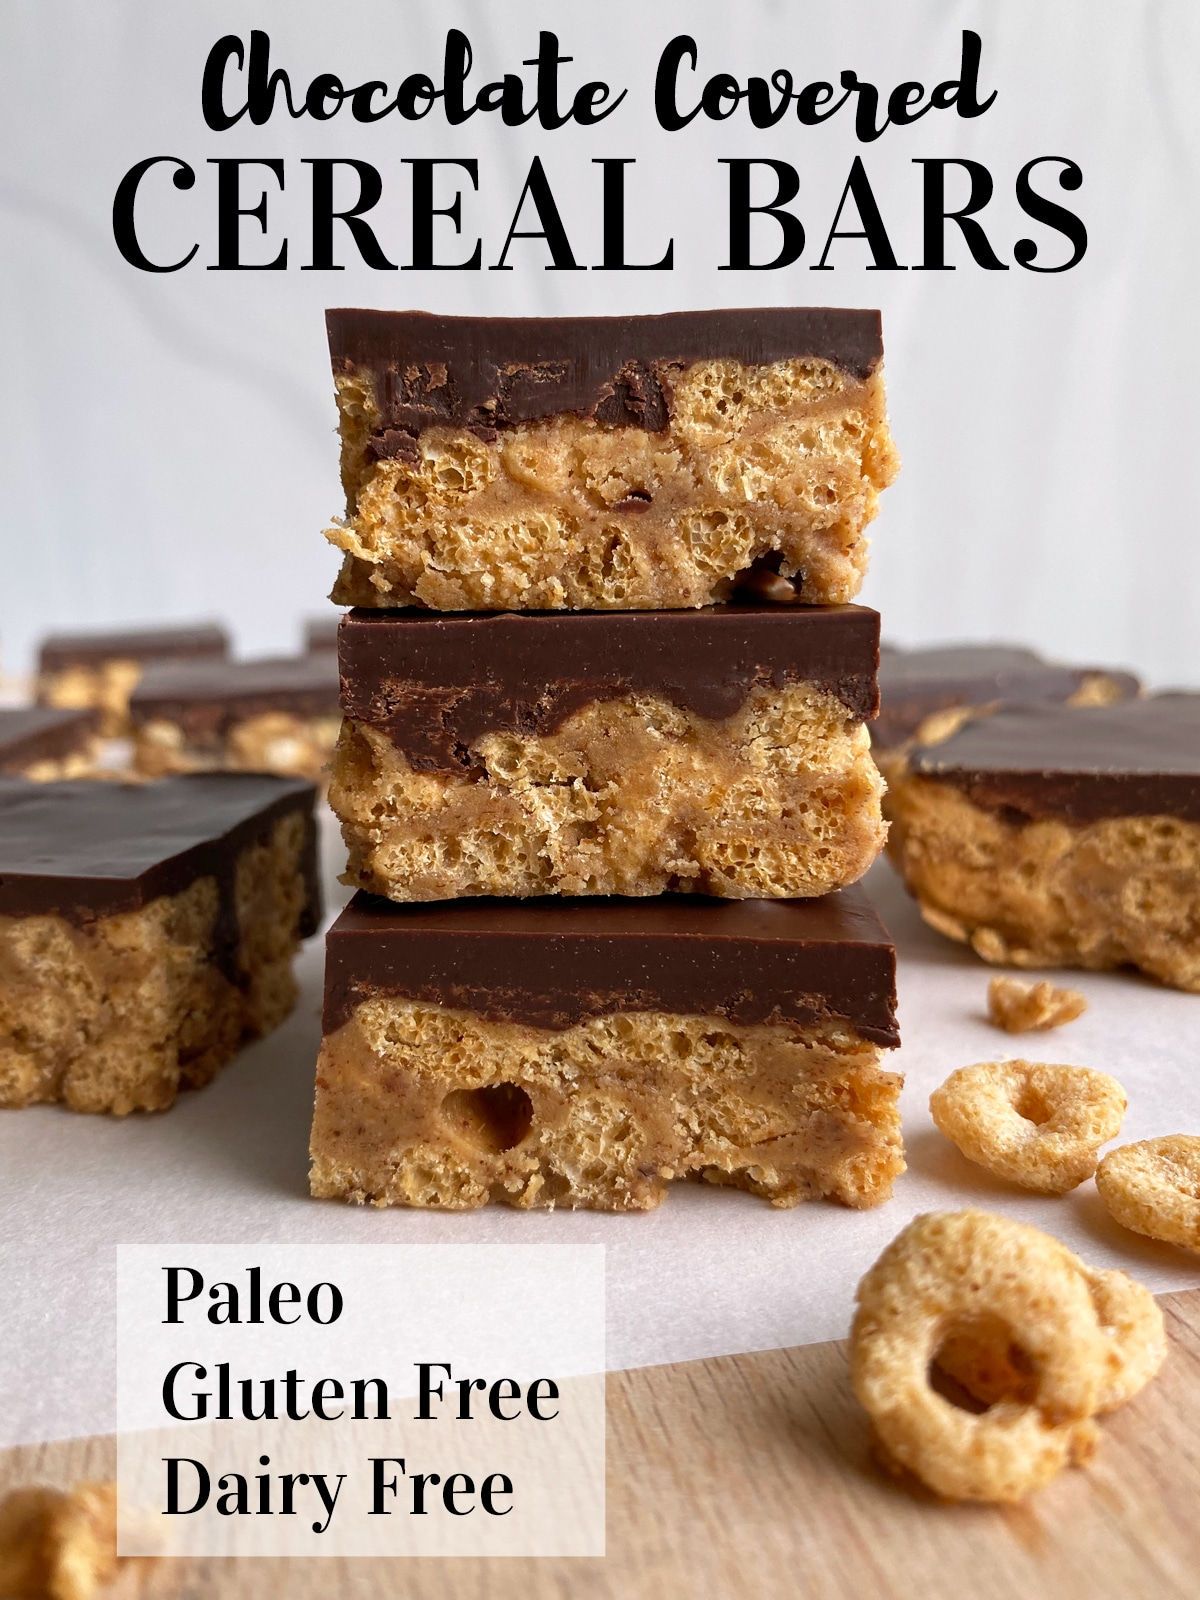 Healthy-Chocolate-Covered-Cheerios-Cereal-Bars